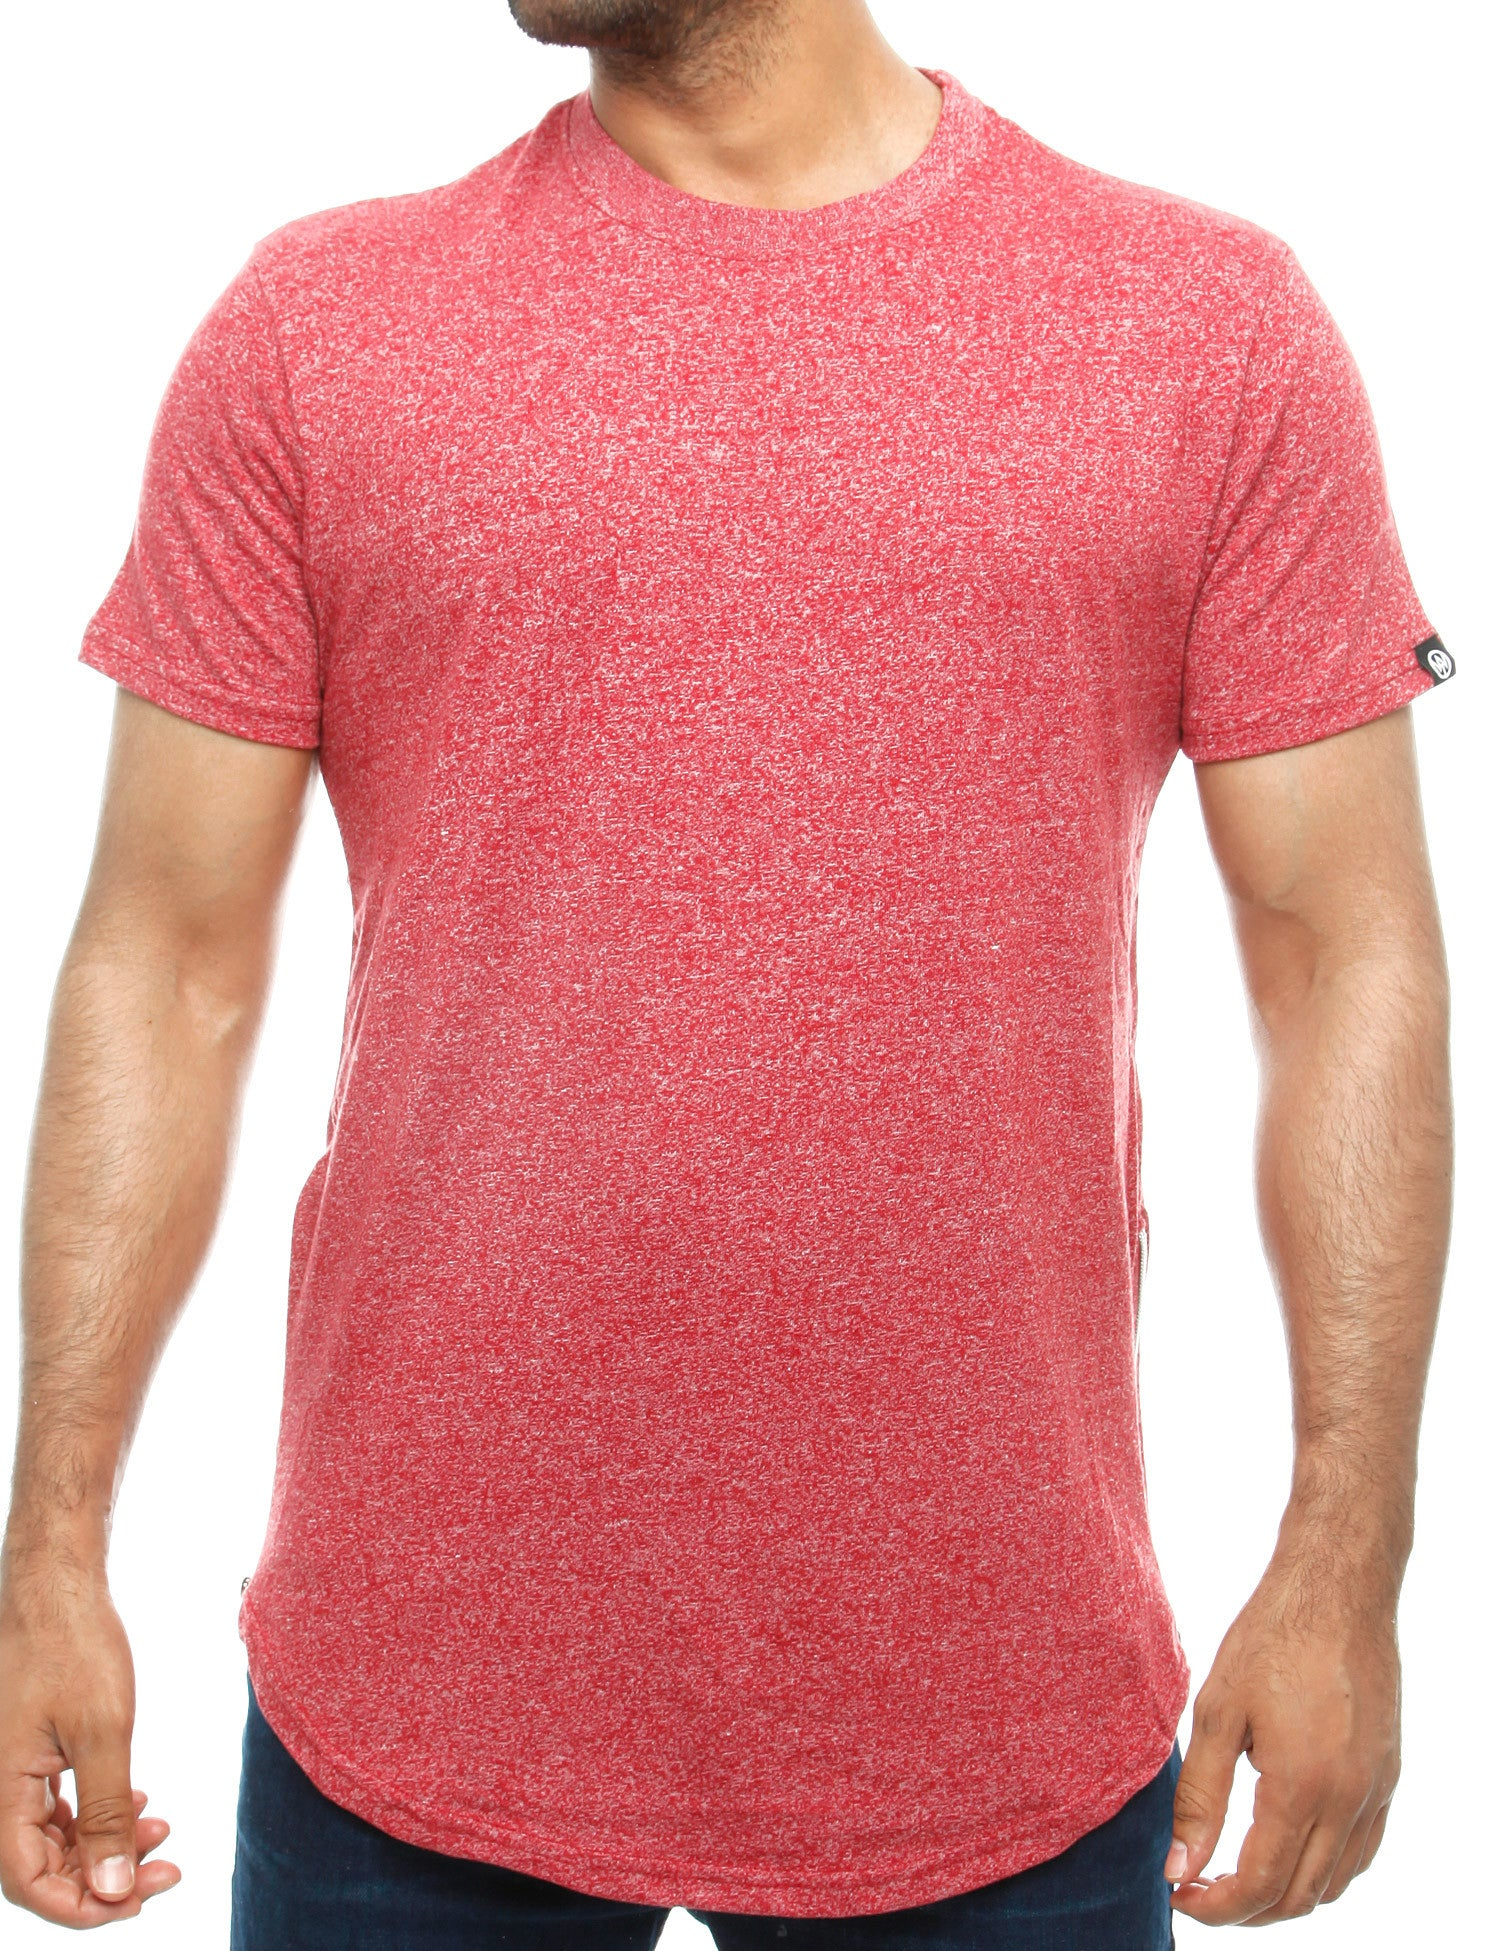 Southpole T-Shirt 16191-1031 Marled Red